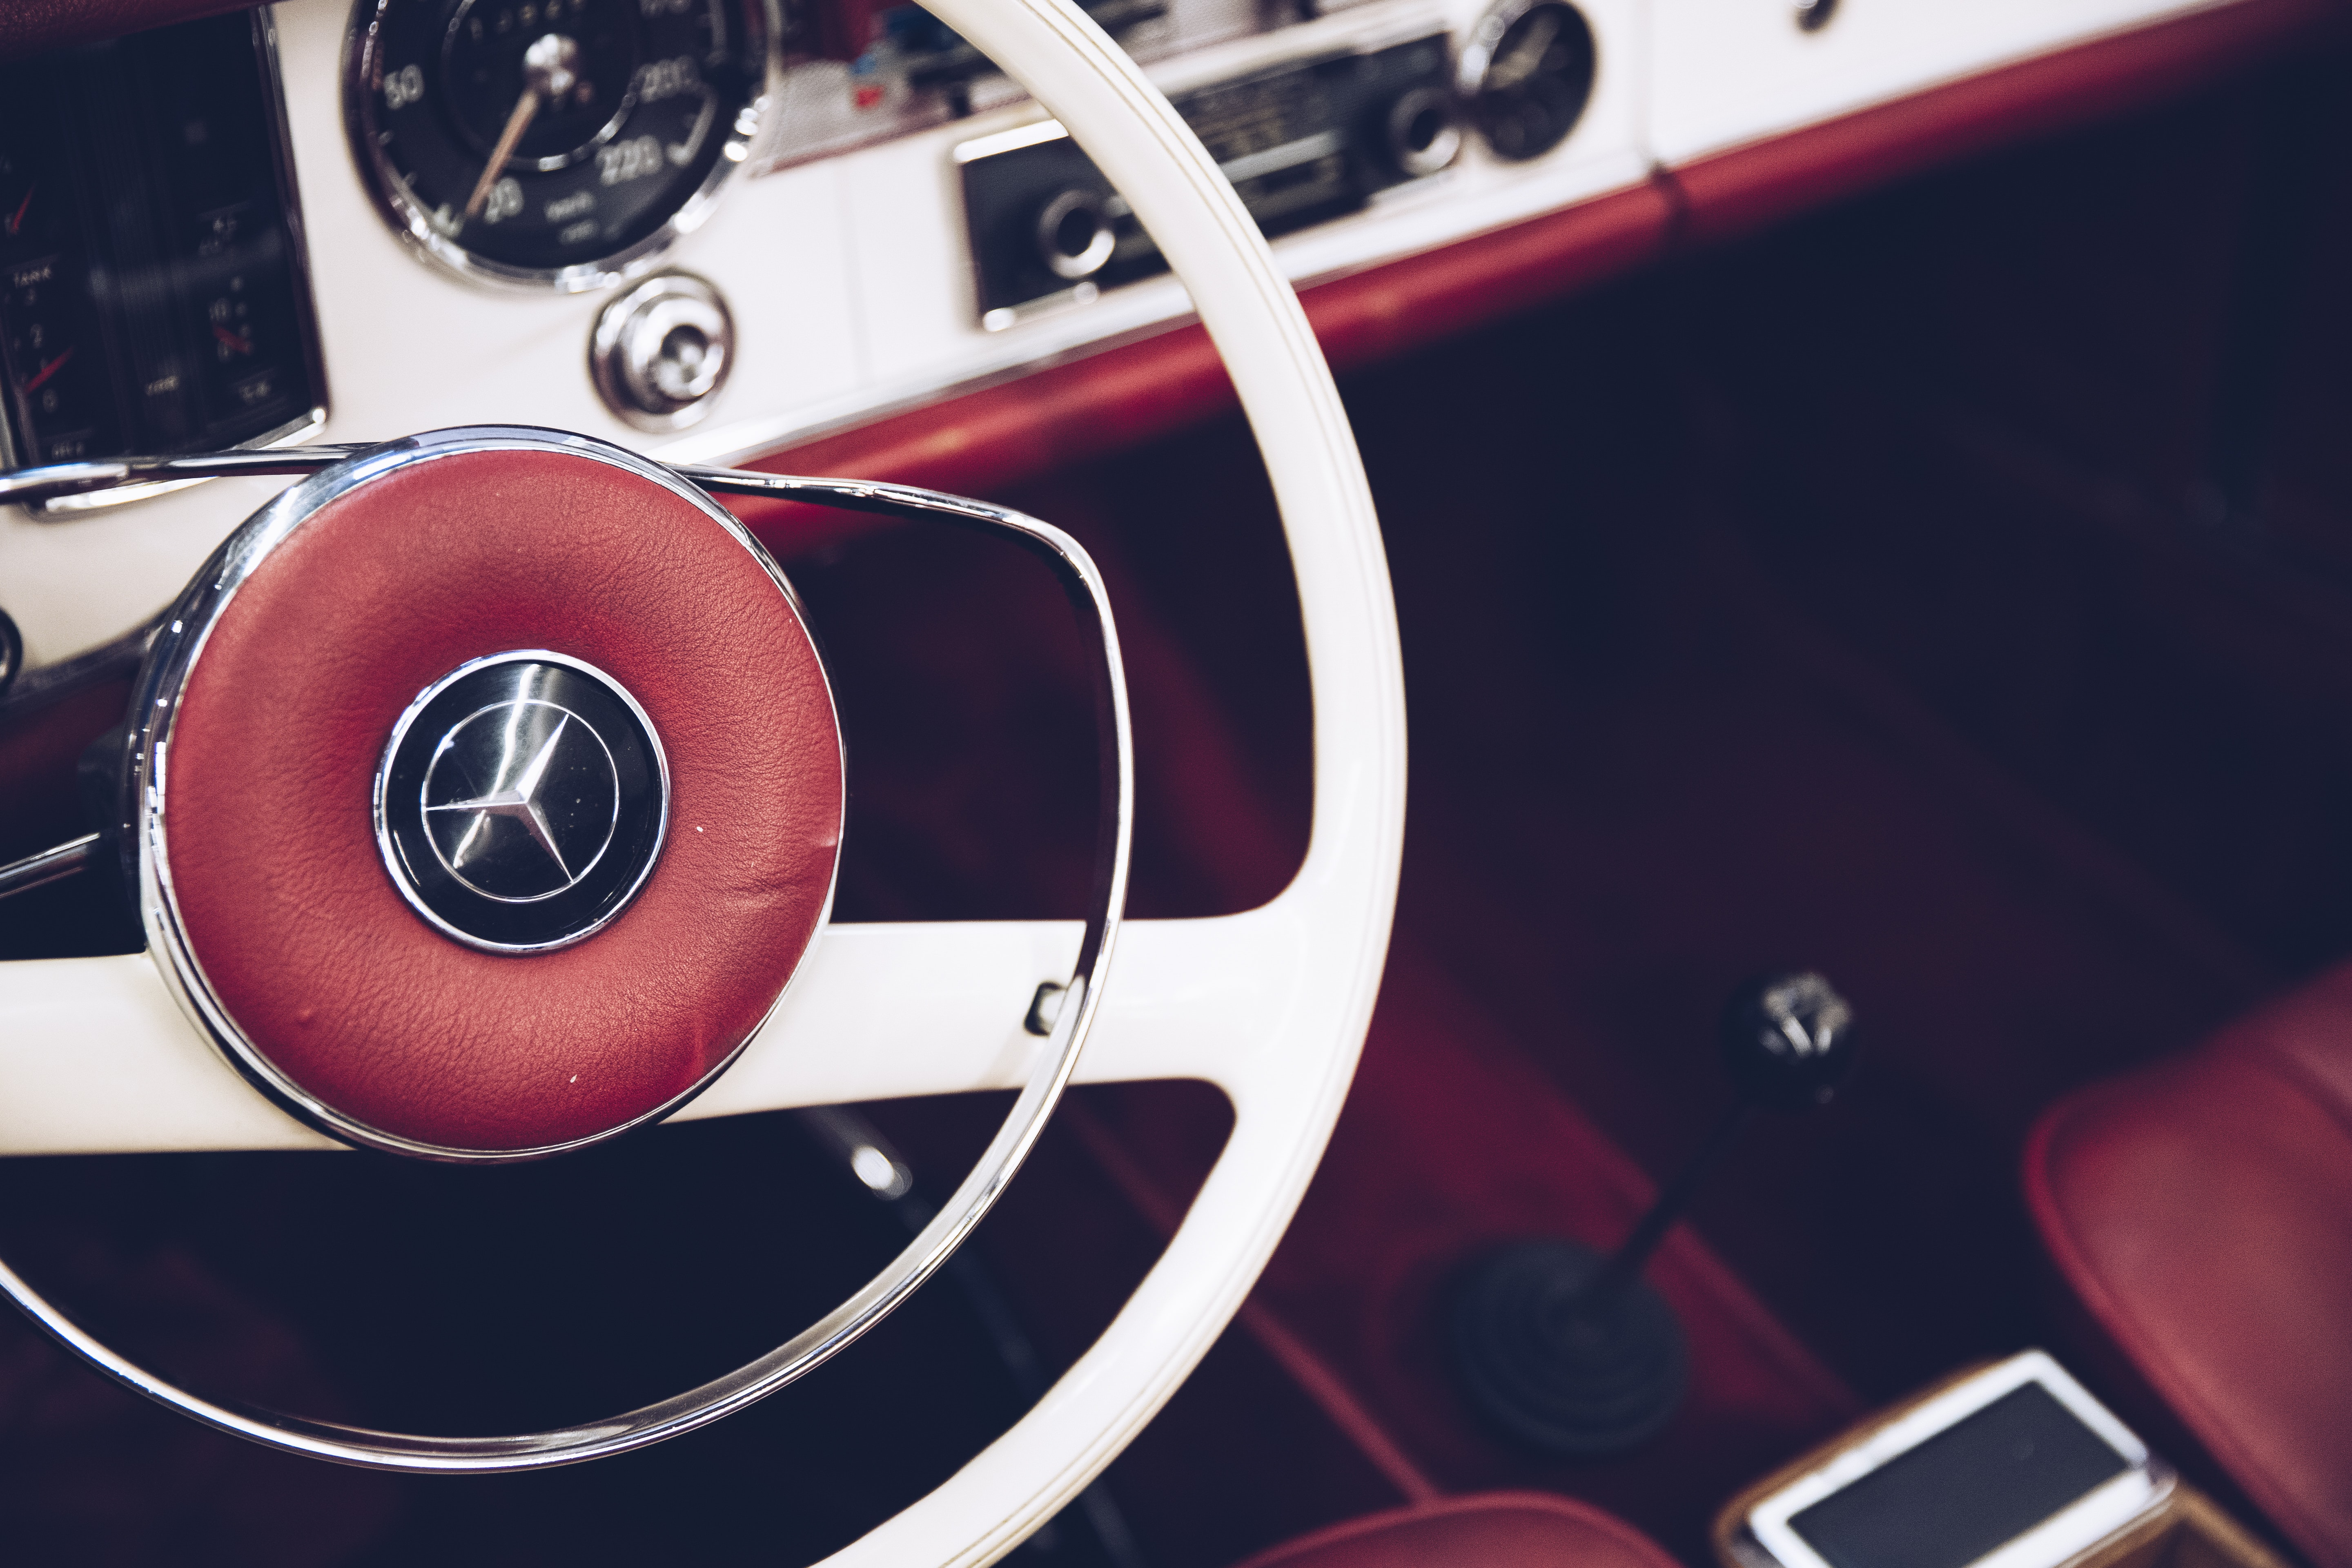 red and white Mercedes-Benz vehicle interior